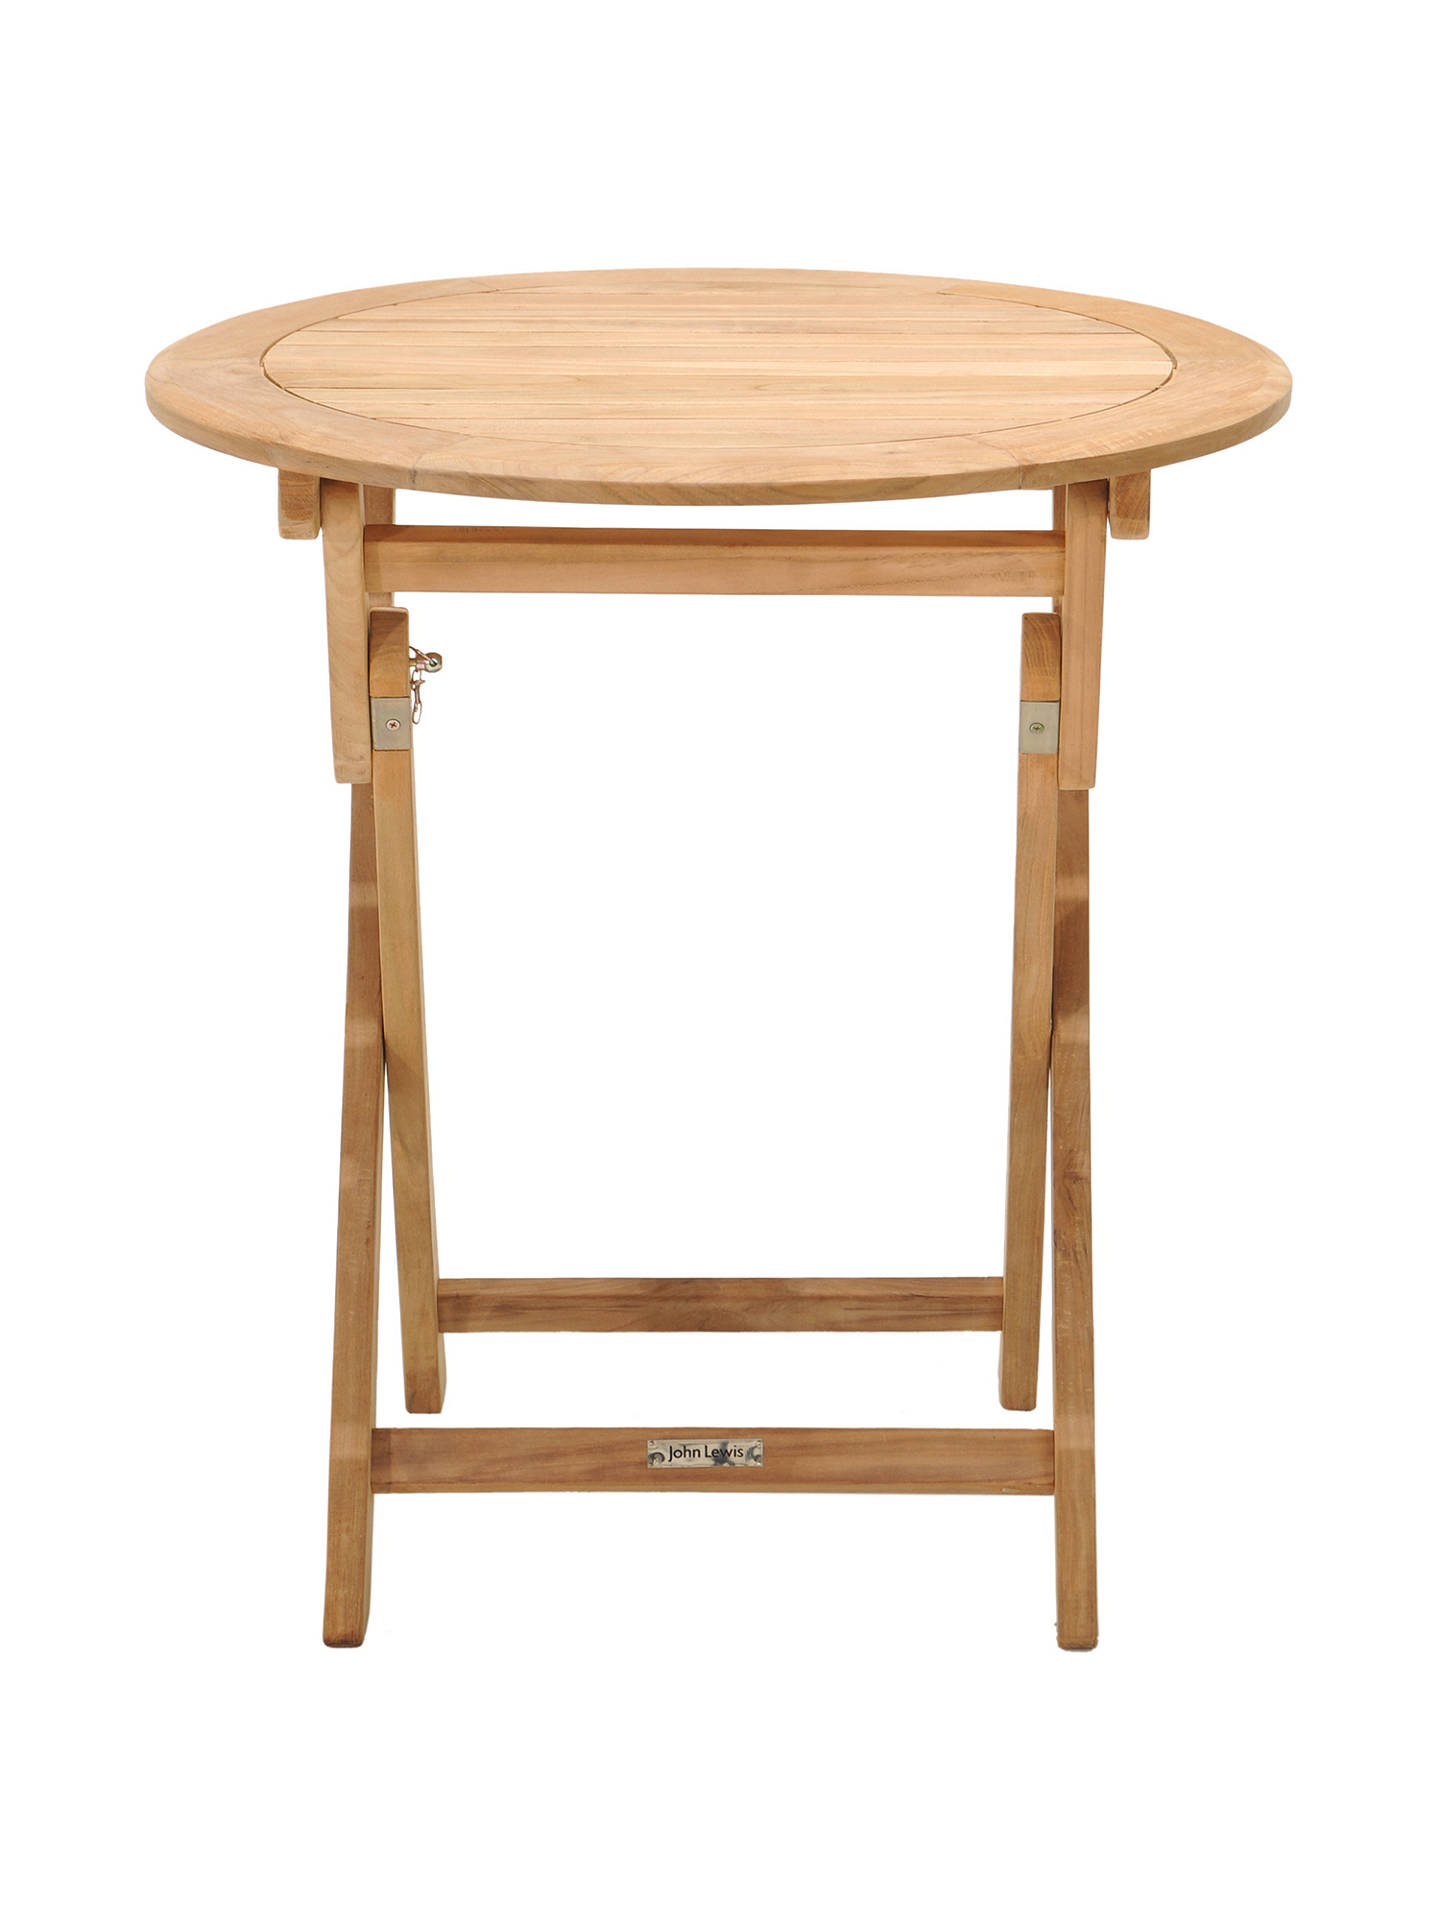 BuyJohn Lewis & Partners Longstock Bistro 2 Seater Dining Table Online at johnlewis.com